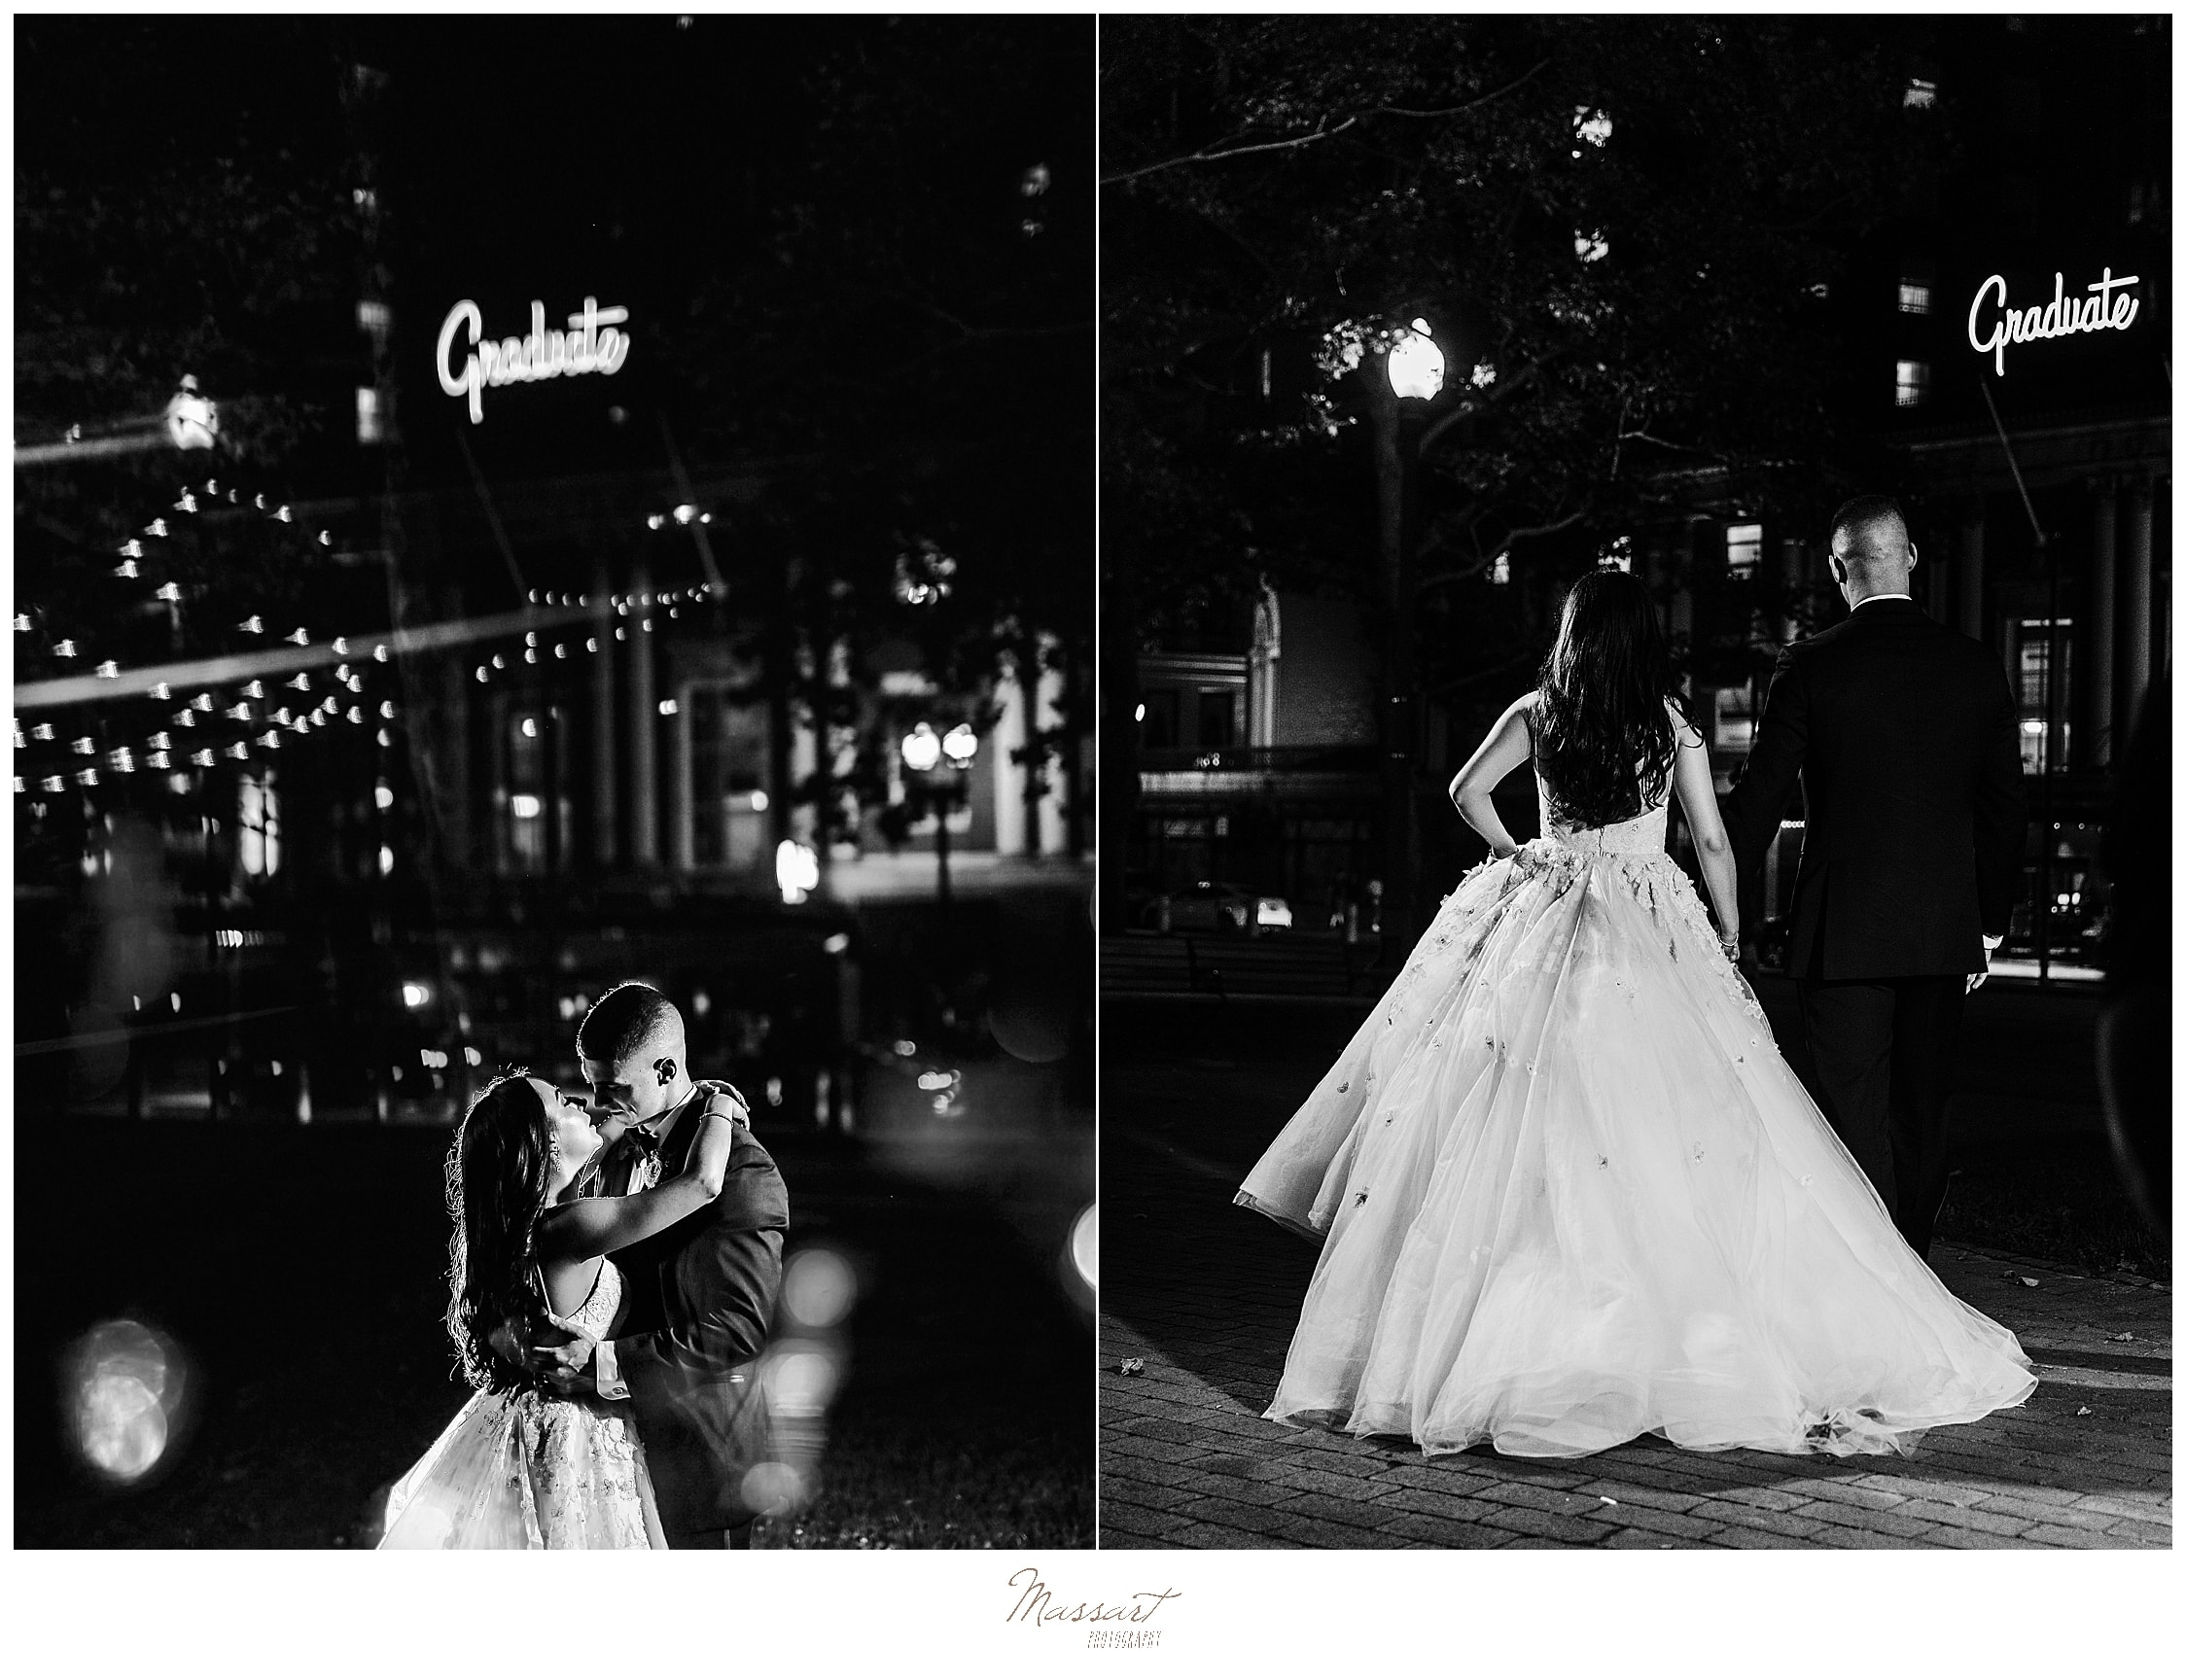 nighttime Graduate Providence wedding photos by wedding photographers Massart Photography